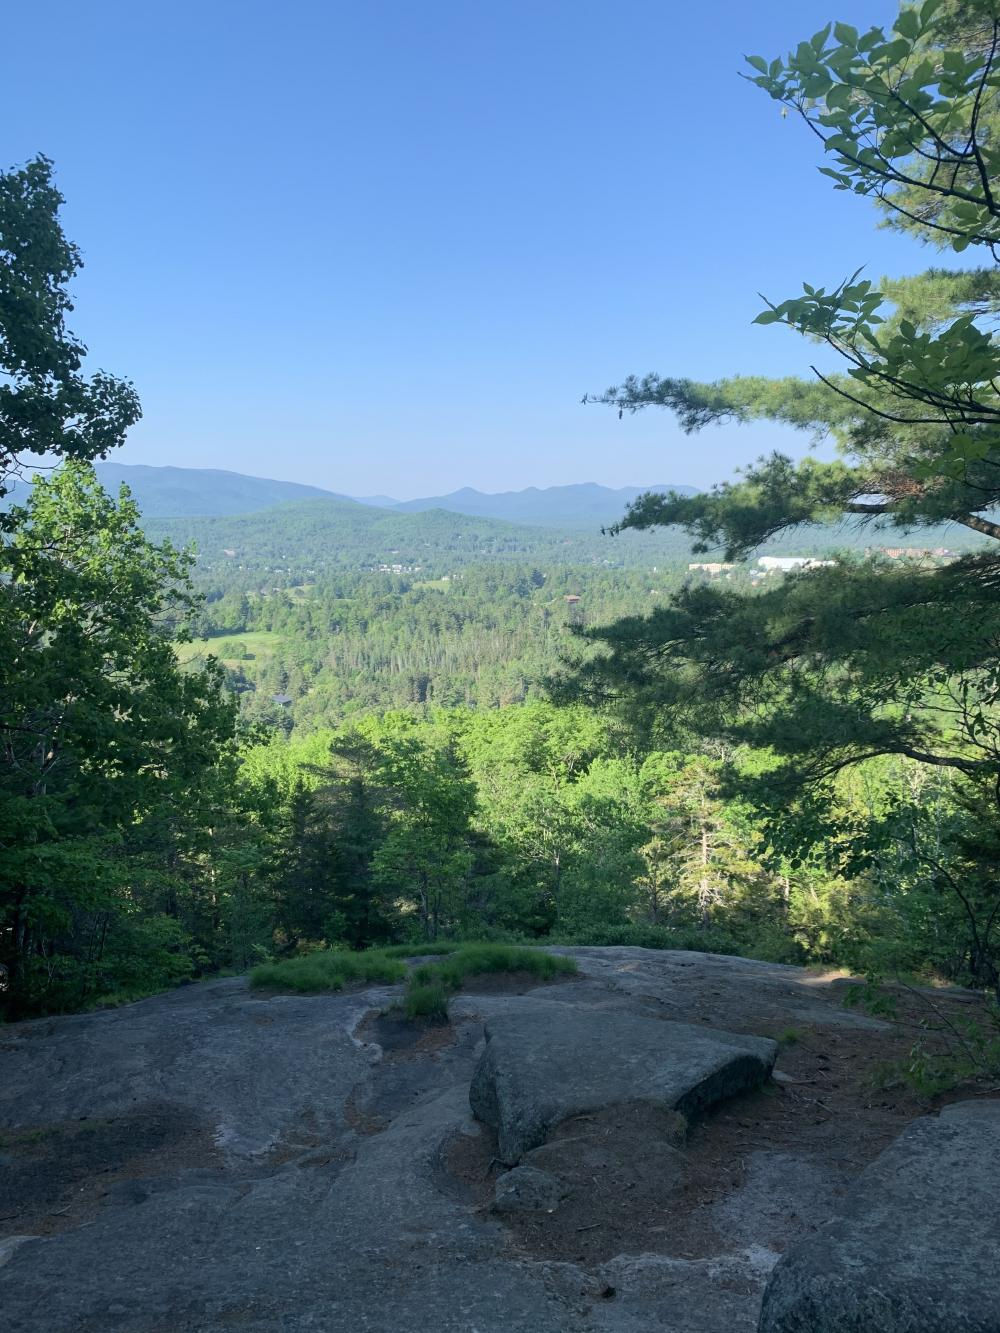 A rocky ledge offers a view of mountains and forest.